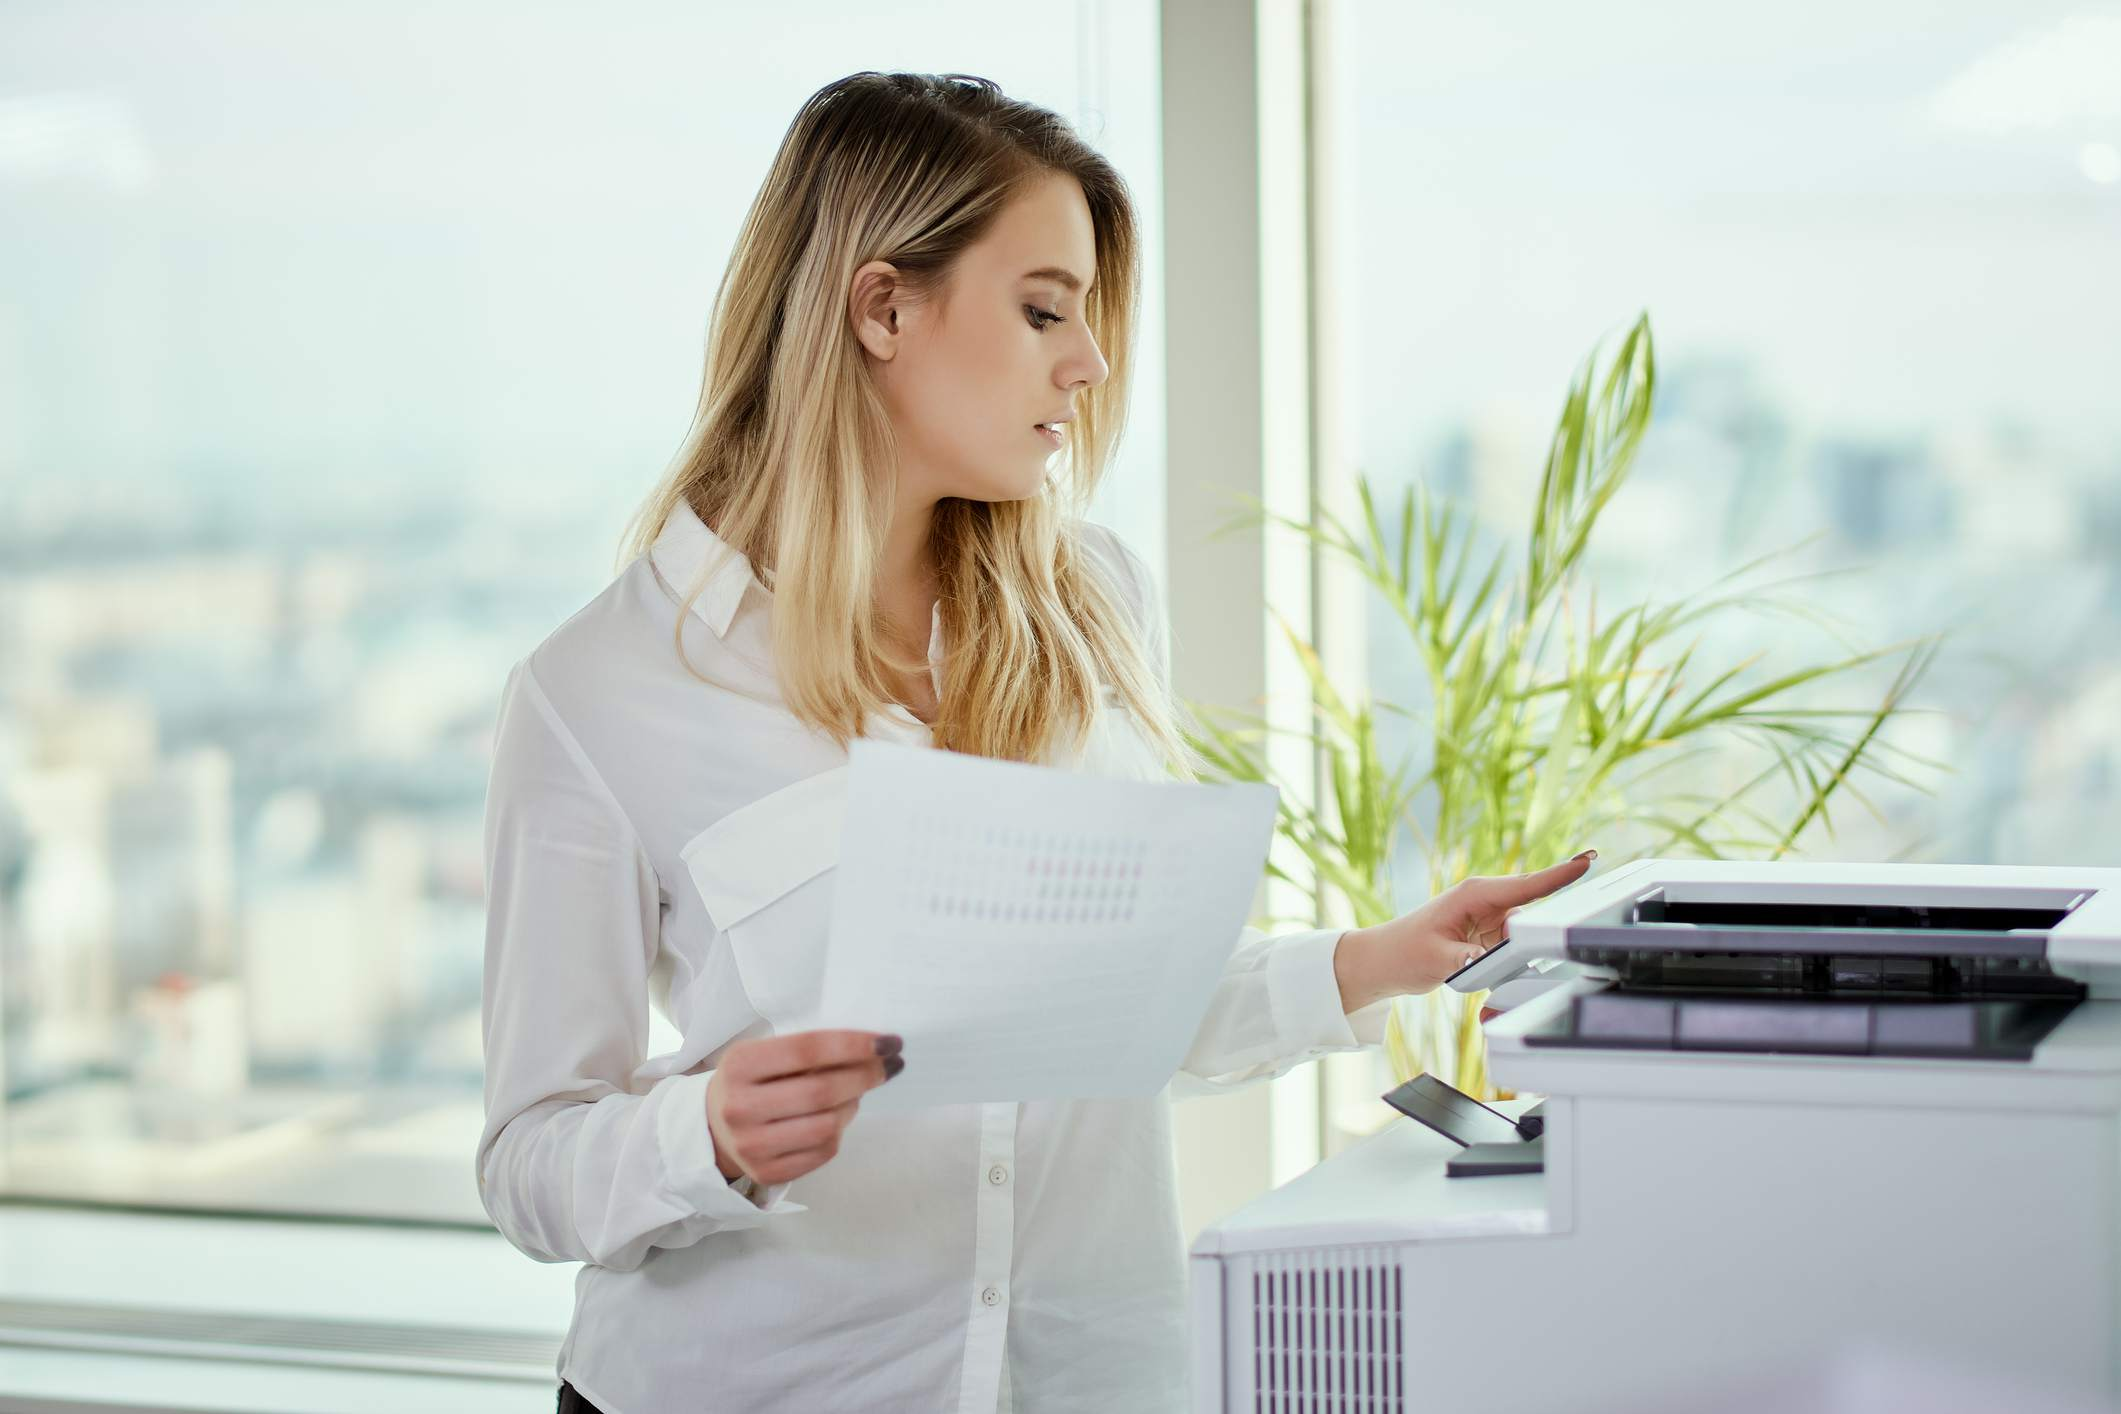 Businesswoman Holding Documents Using Printer At Office